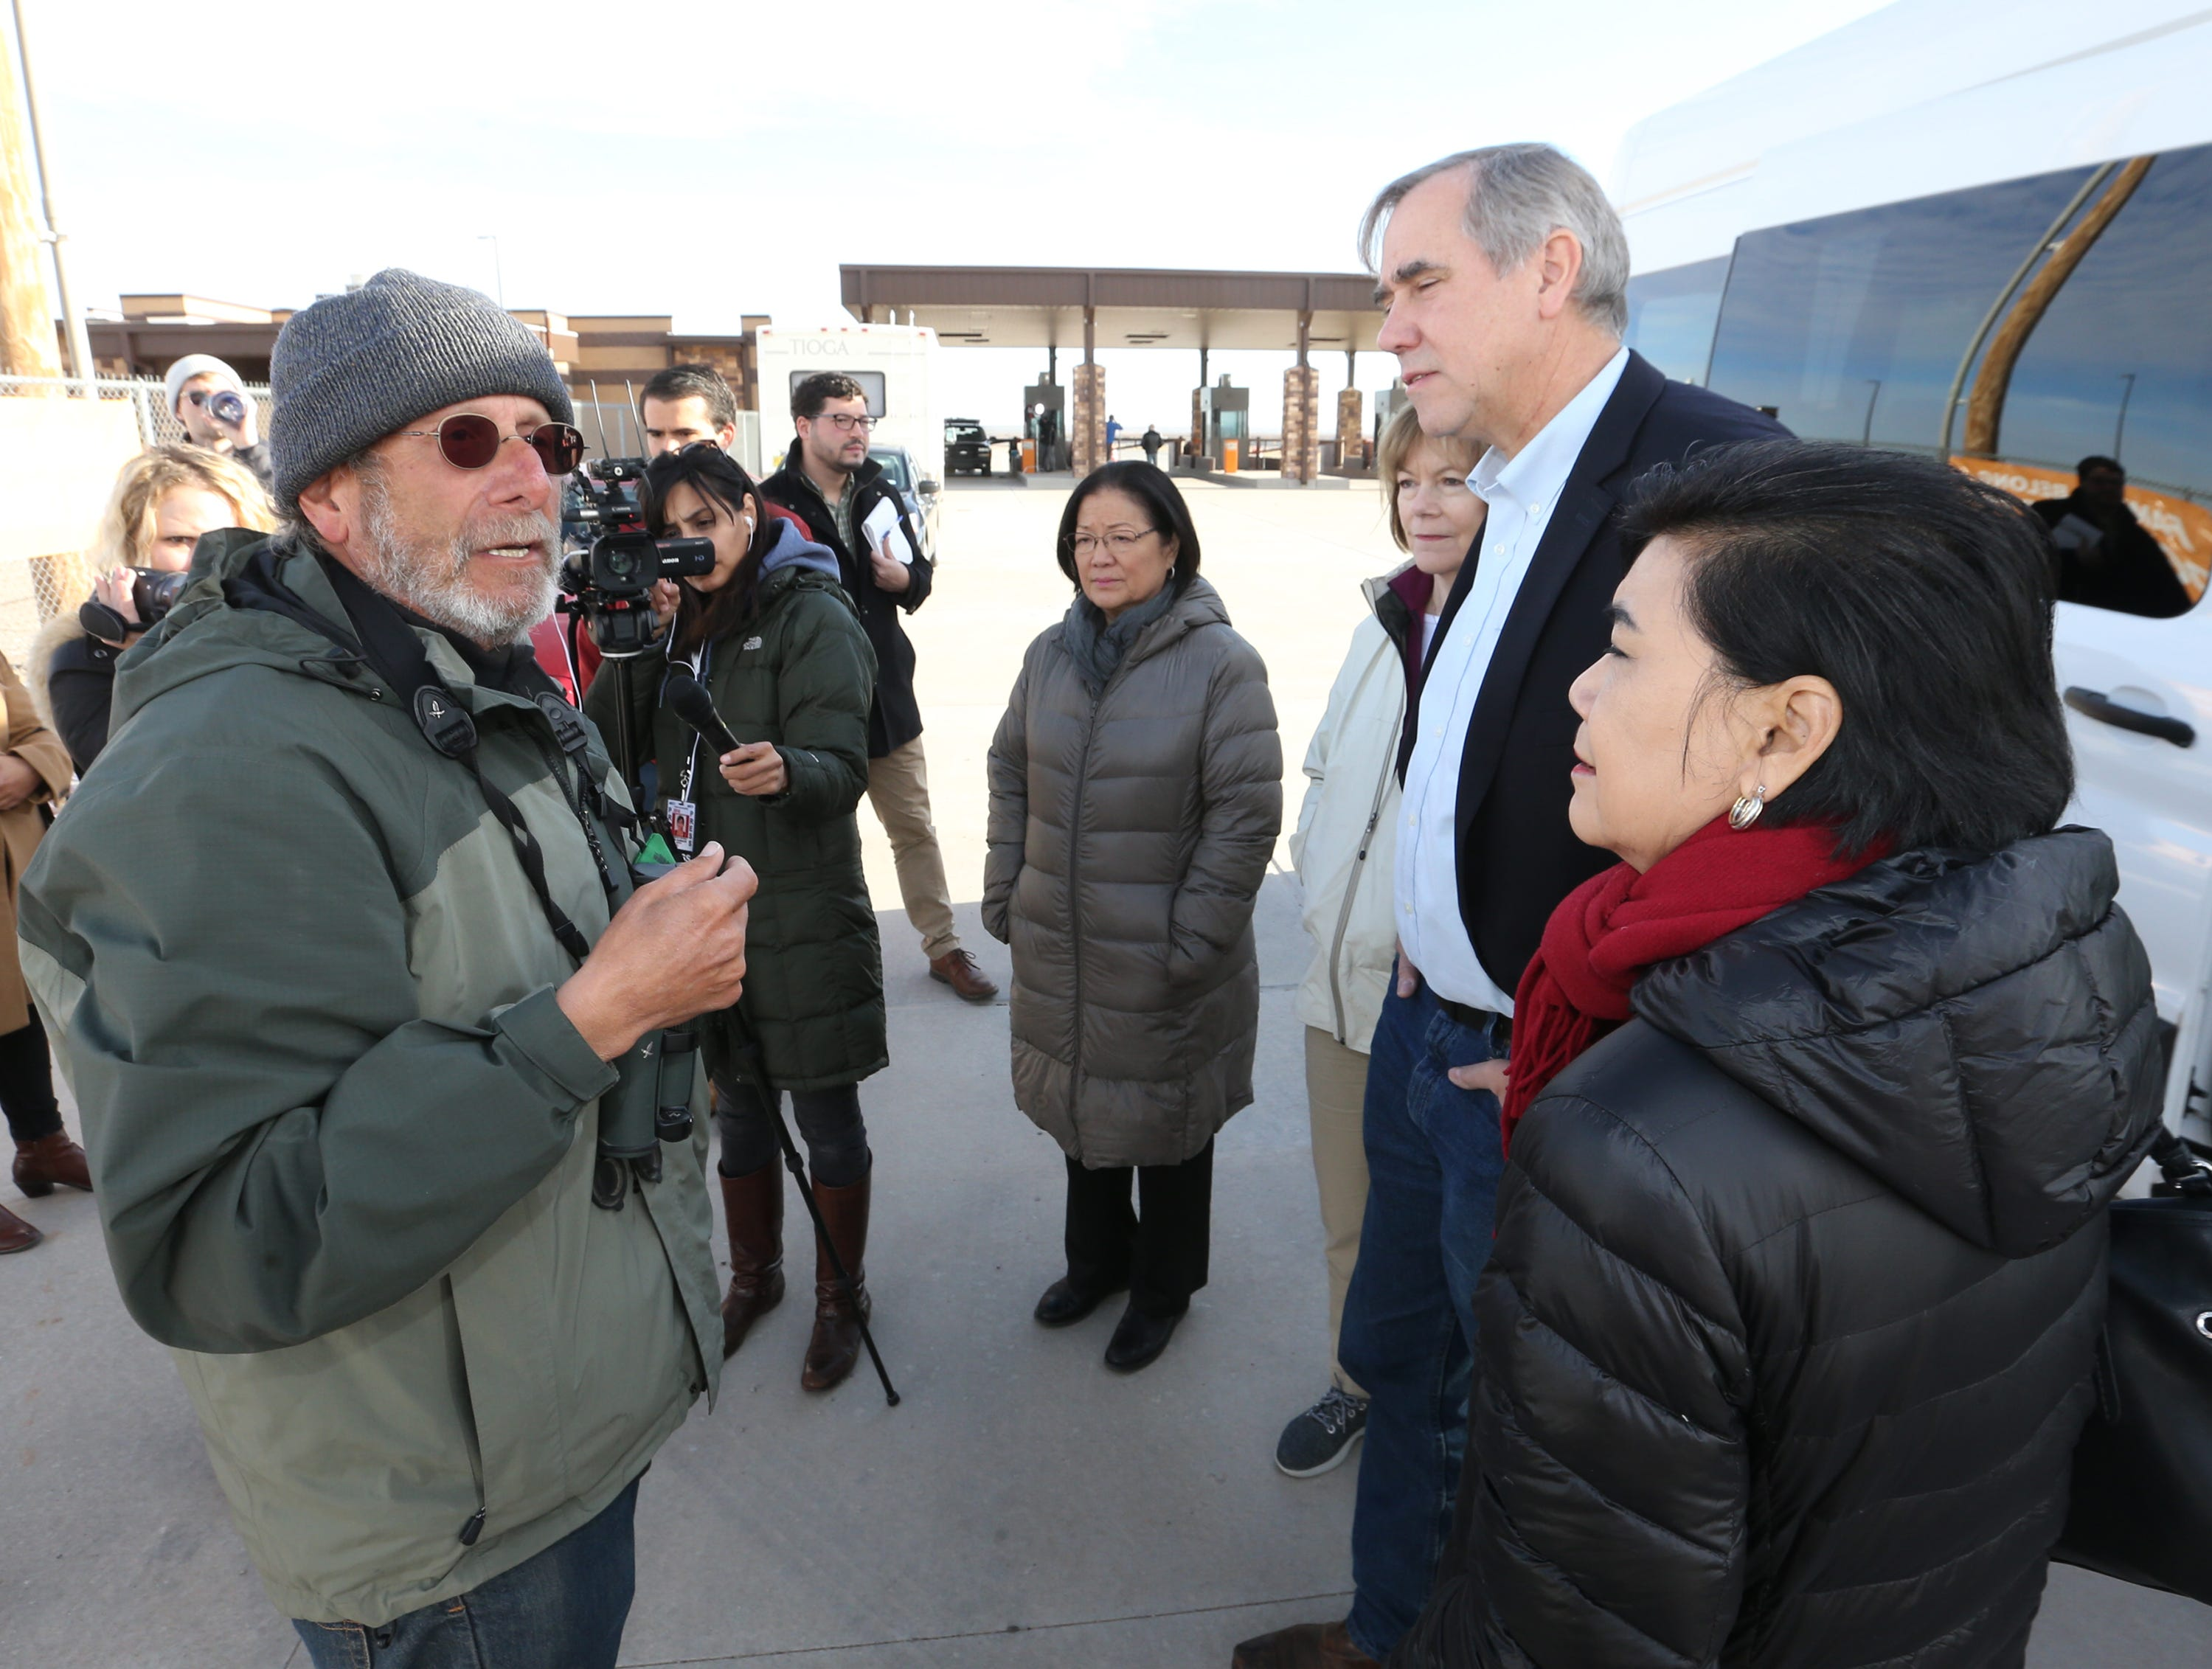 Joshua Rubin, left, of Brooklyn, N.Y. talks to members of Congress before they went in to tour the Tornillo international port of entry where more than 2,000 undocumented children are being housed Saturday. Rubin said he has been living outside the gates of the port in an RV for two months.